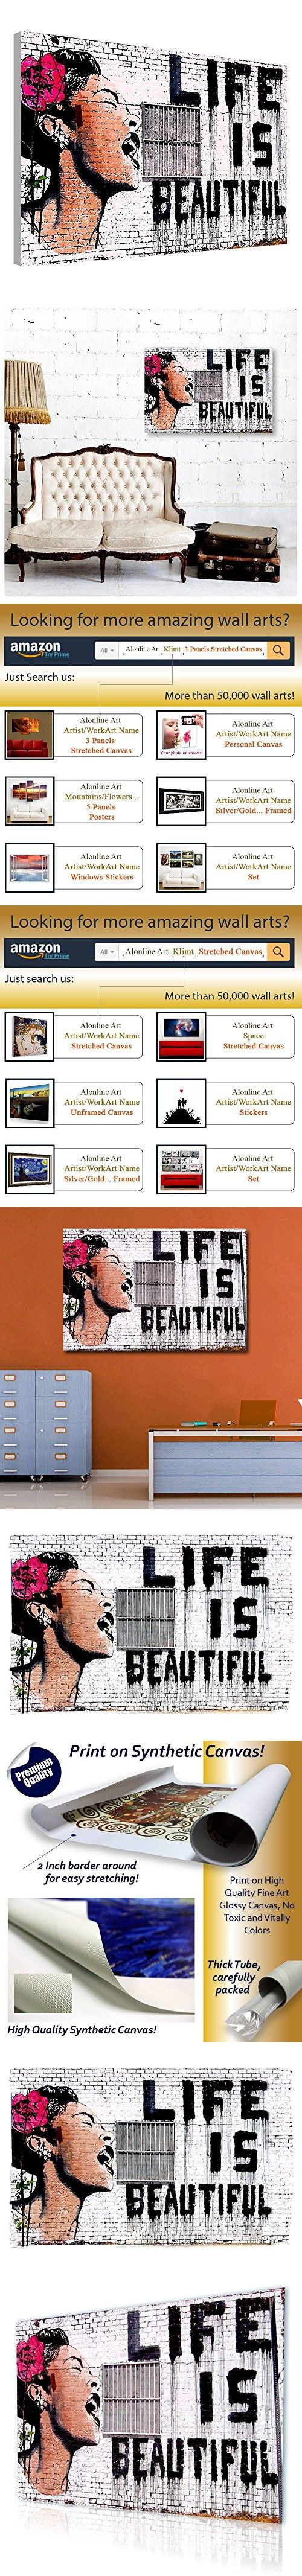 "Alonline Art - Life Is Beautiful Banksy PRINT On CANVAS (Synthetic, UNFRAMED Unmounted) 30""x20"" - 76x51cm Oil Paints Artwork Oil Painting Print Oil Painting Printed On Canvas Oil Paintings Prints"